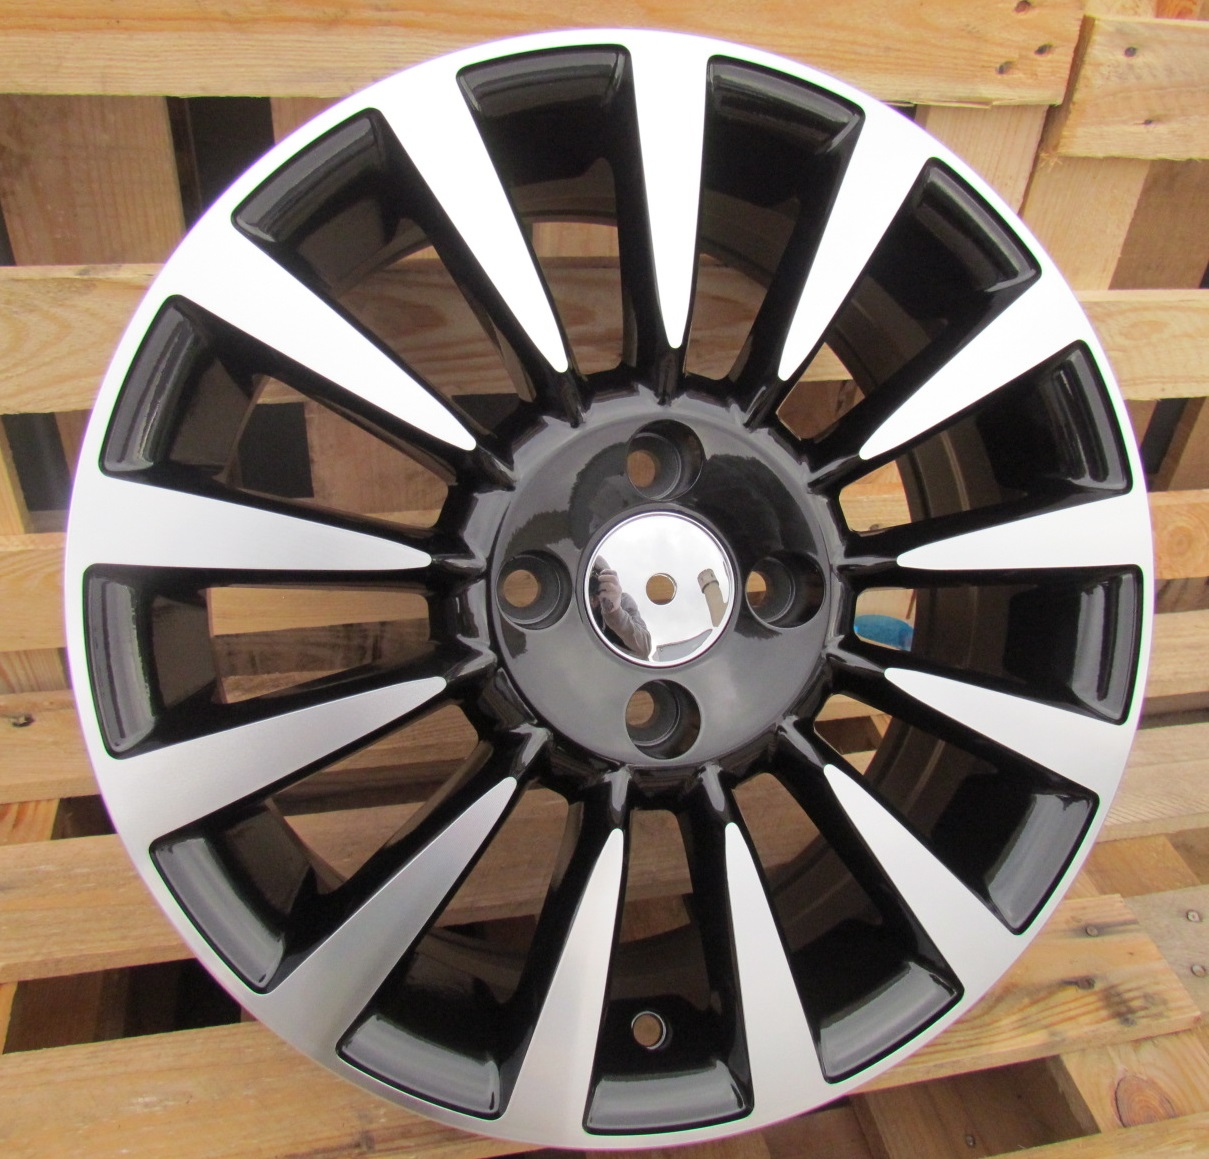 F15X6 4X98 ET35 58.1 BK743 MB+Powder Coating RWR FIA (+2eur) (D2) 6x15 ET36 4x98